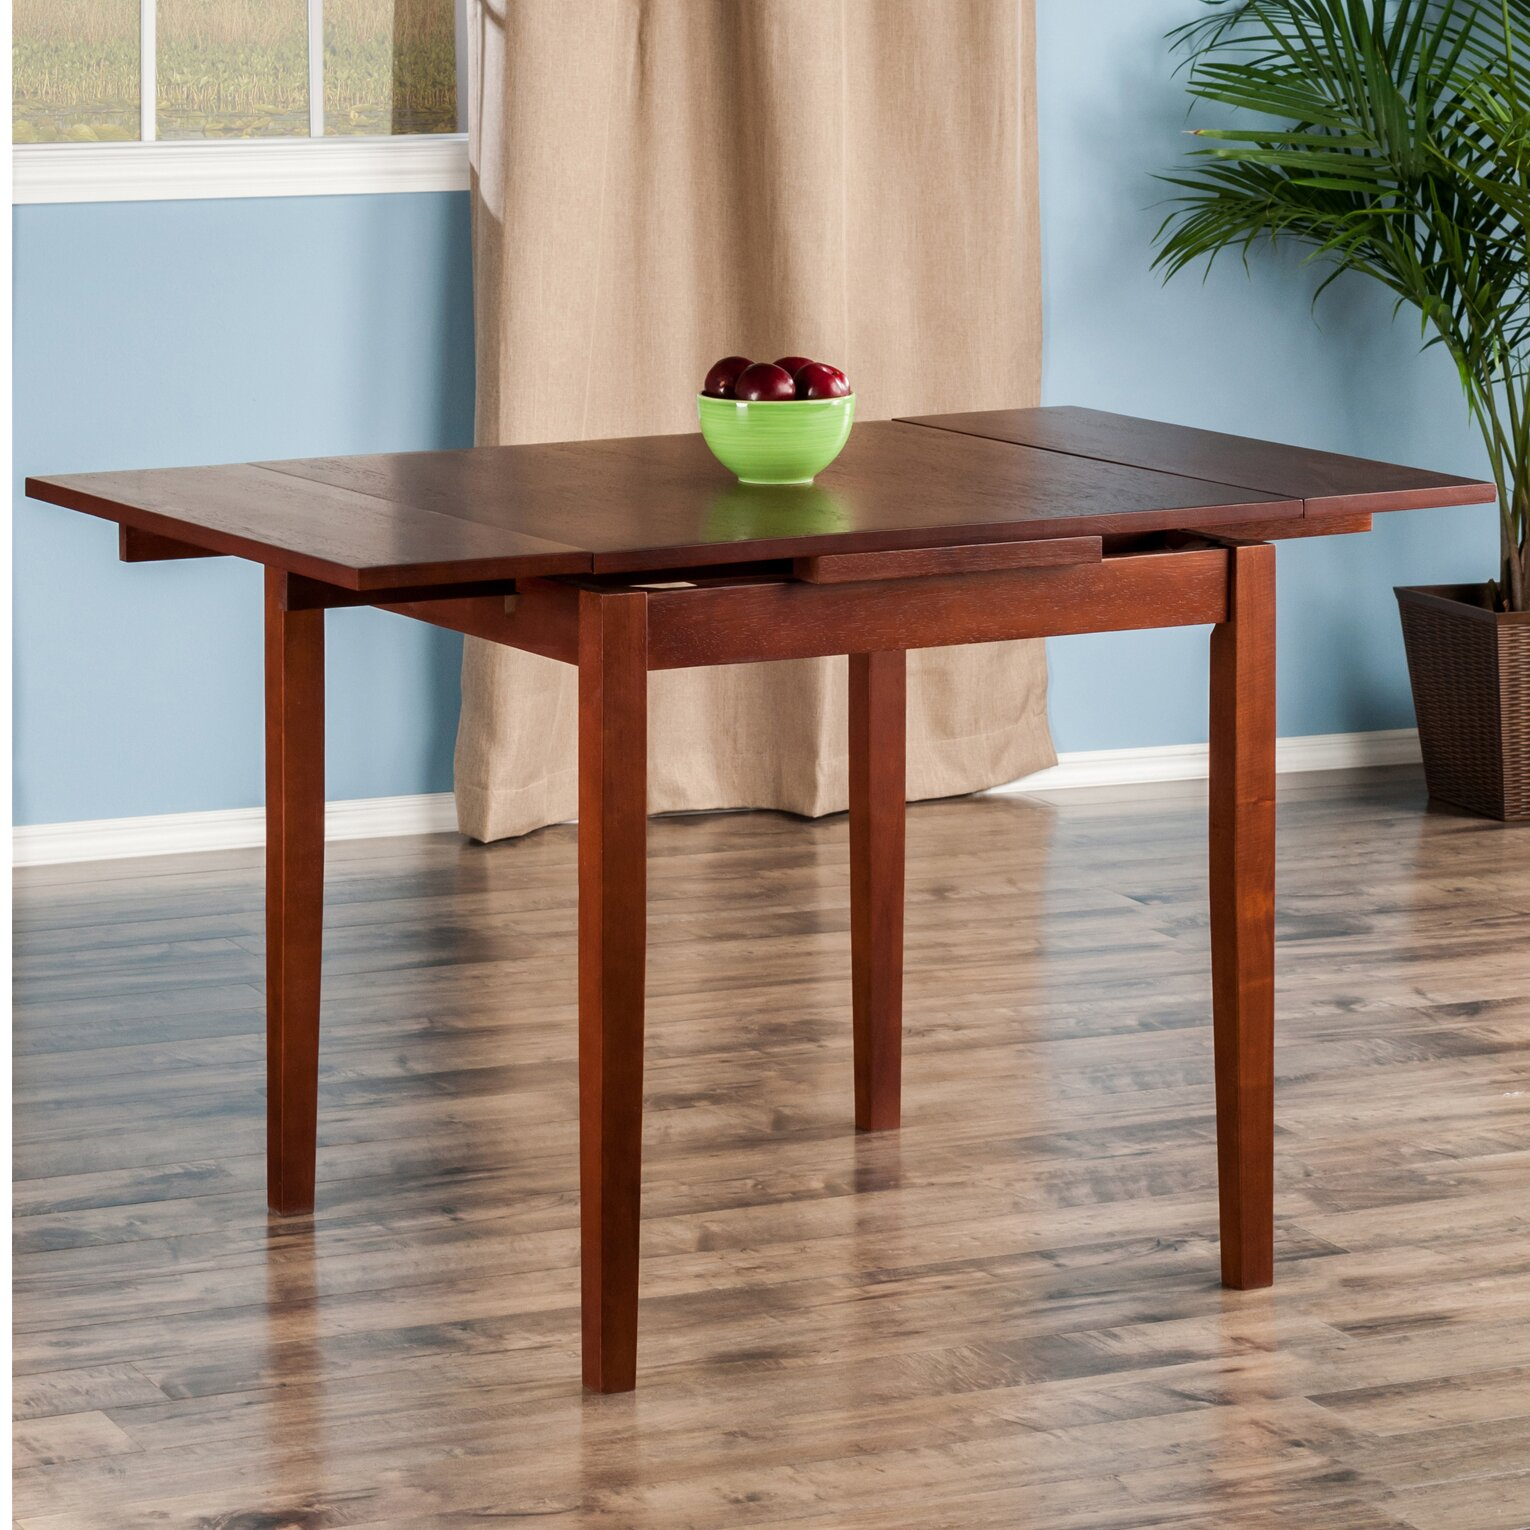 Dining Extension Table Alcott Hill Shaws Extendable Dining Table Reviews Wayfair